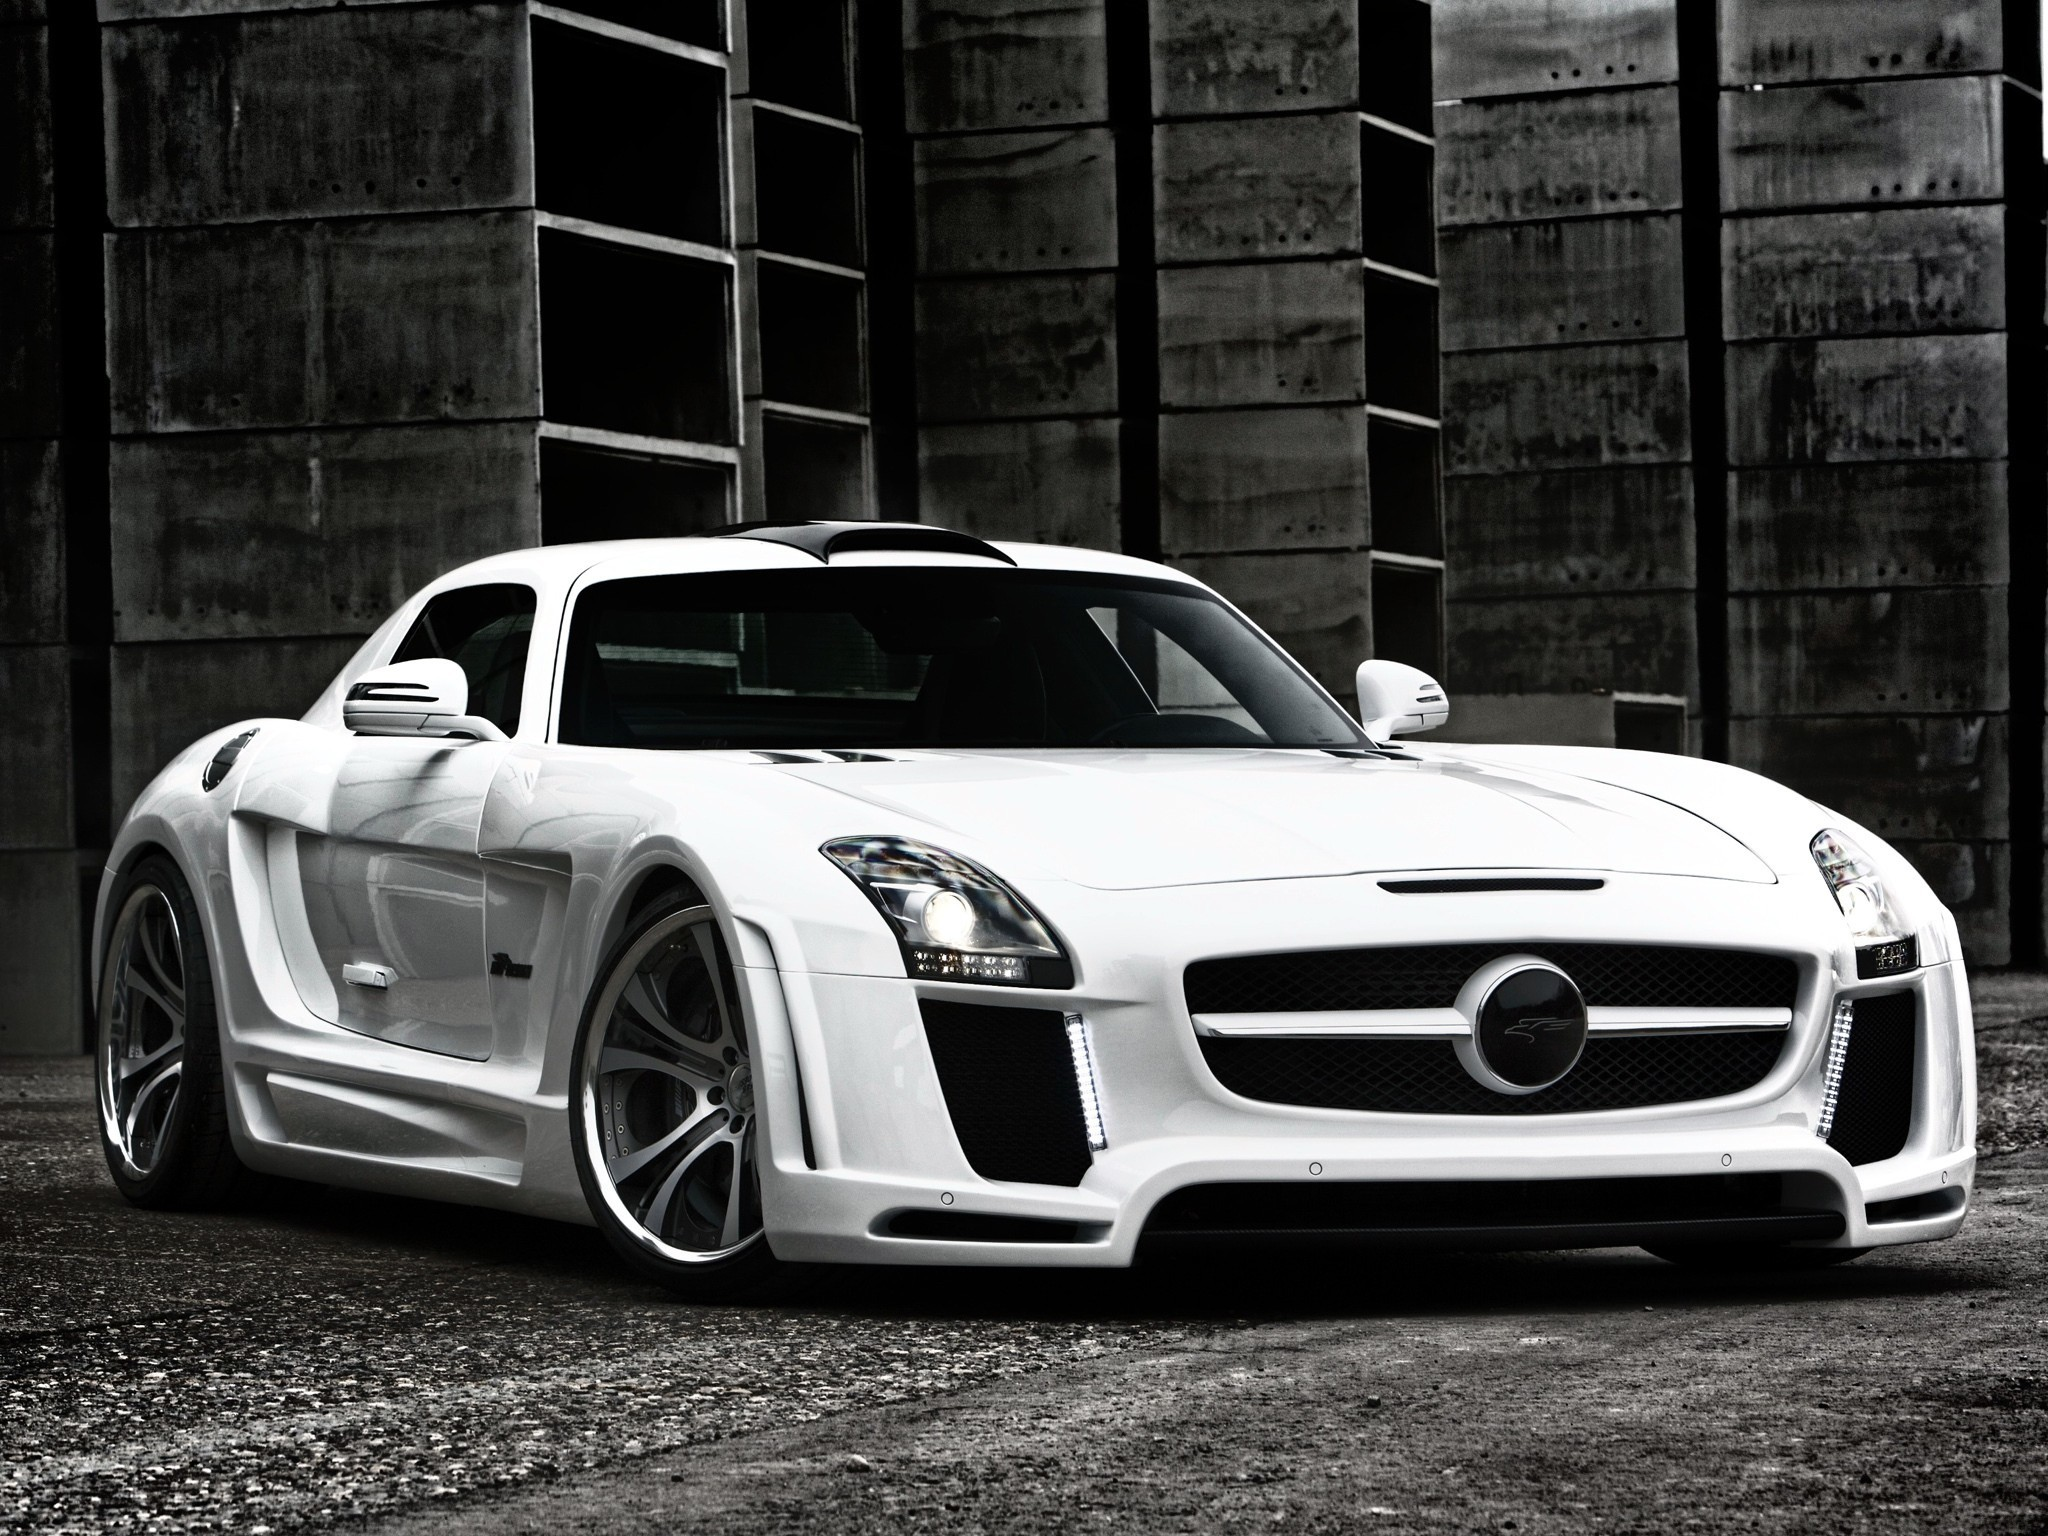 cars Supercars mercedes-benz sls